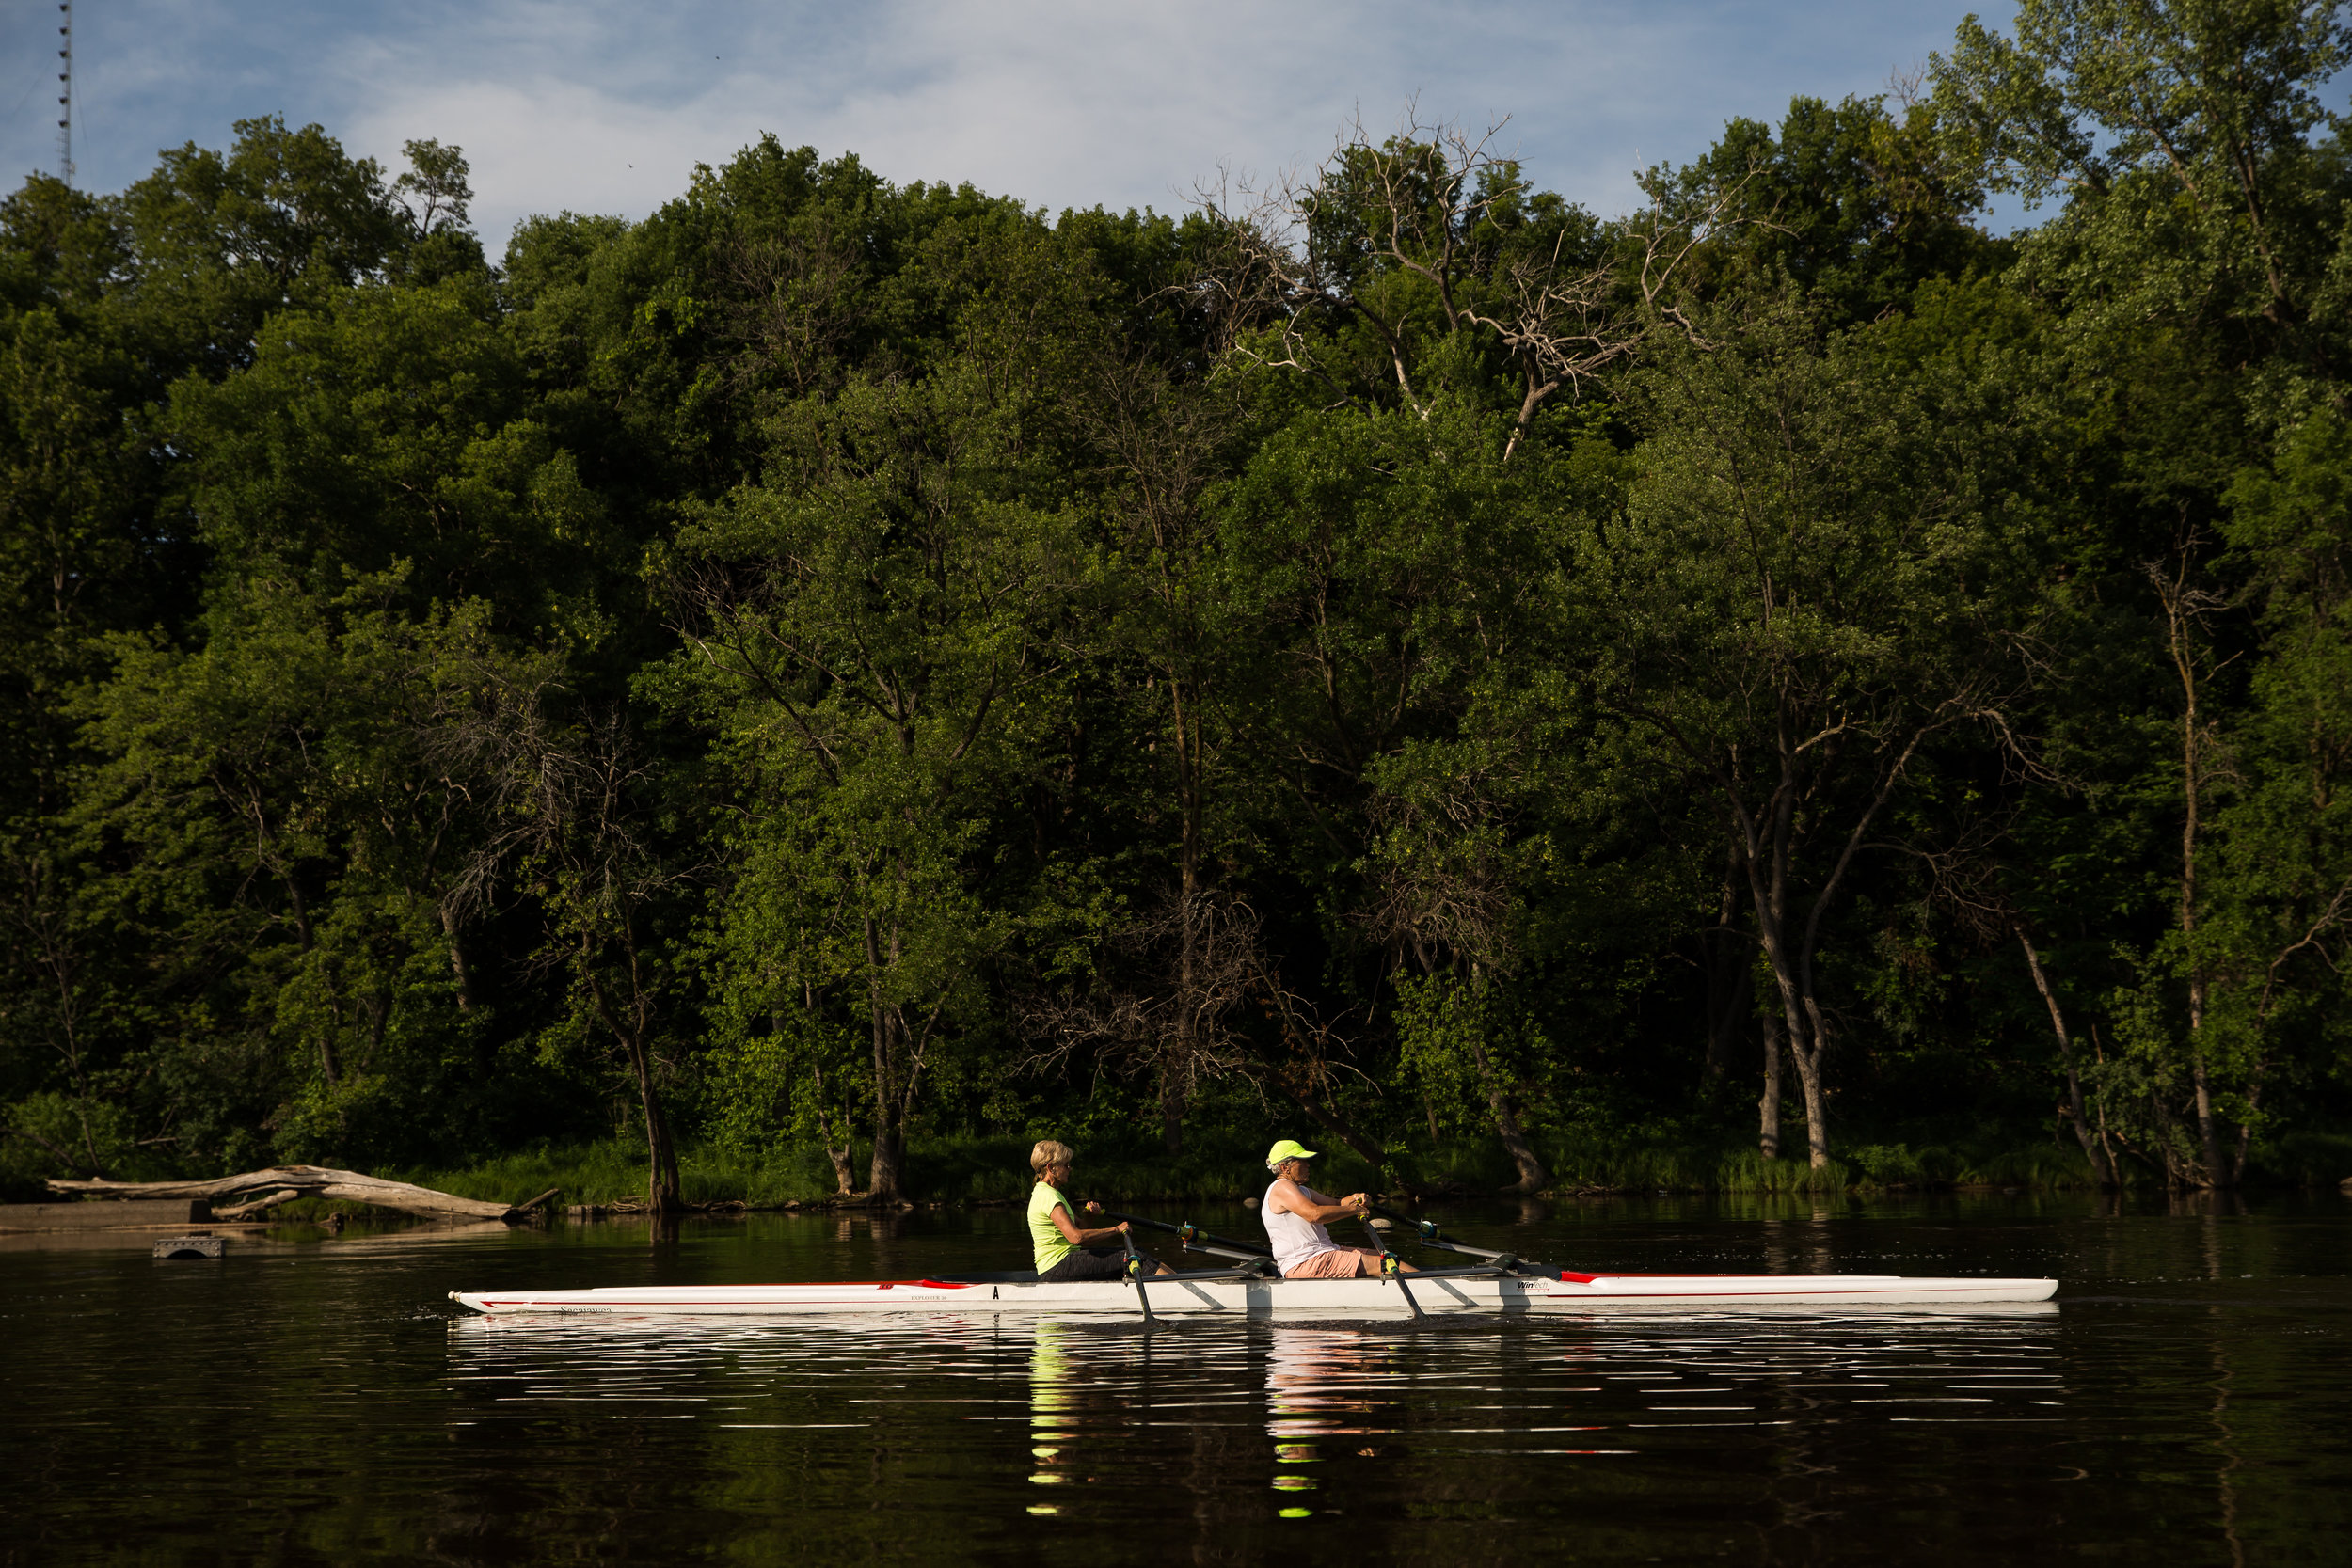 Joy Rikala, left, and Judy Winiecki row a two-person shell up the Mississippi River during a two-hour practice in Minneapolis, Minn. on July 13, 2018. (Lacey Young, MPR News)